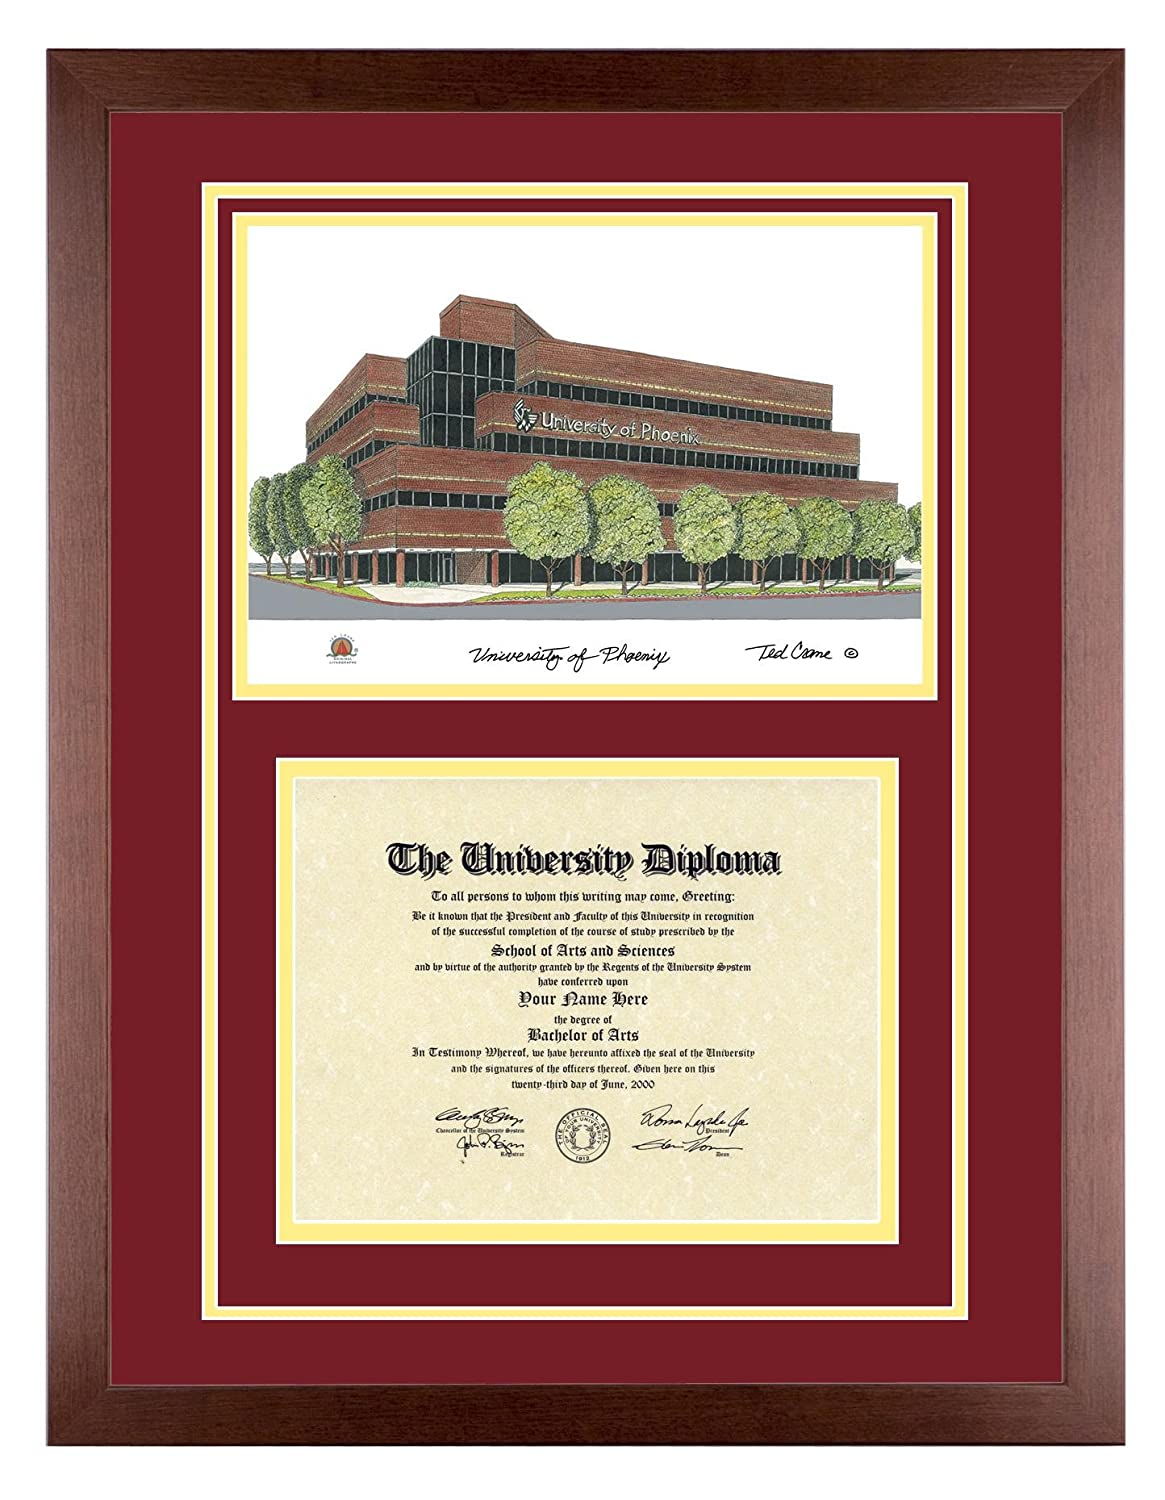 Amazon.com: UNIVERSITY OF PHOENIX Diploma Frame with Artwork in ...